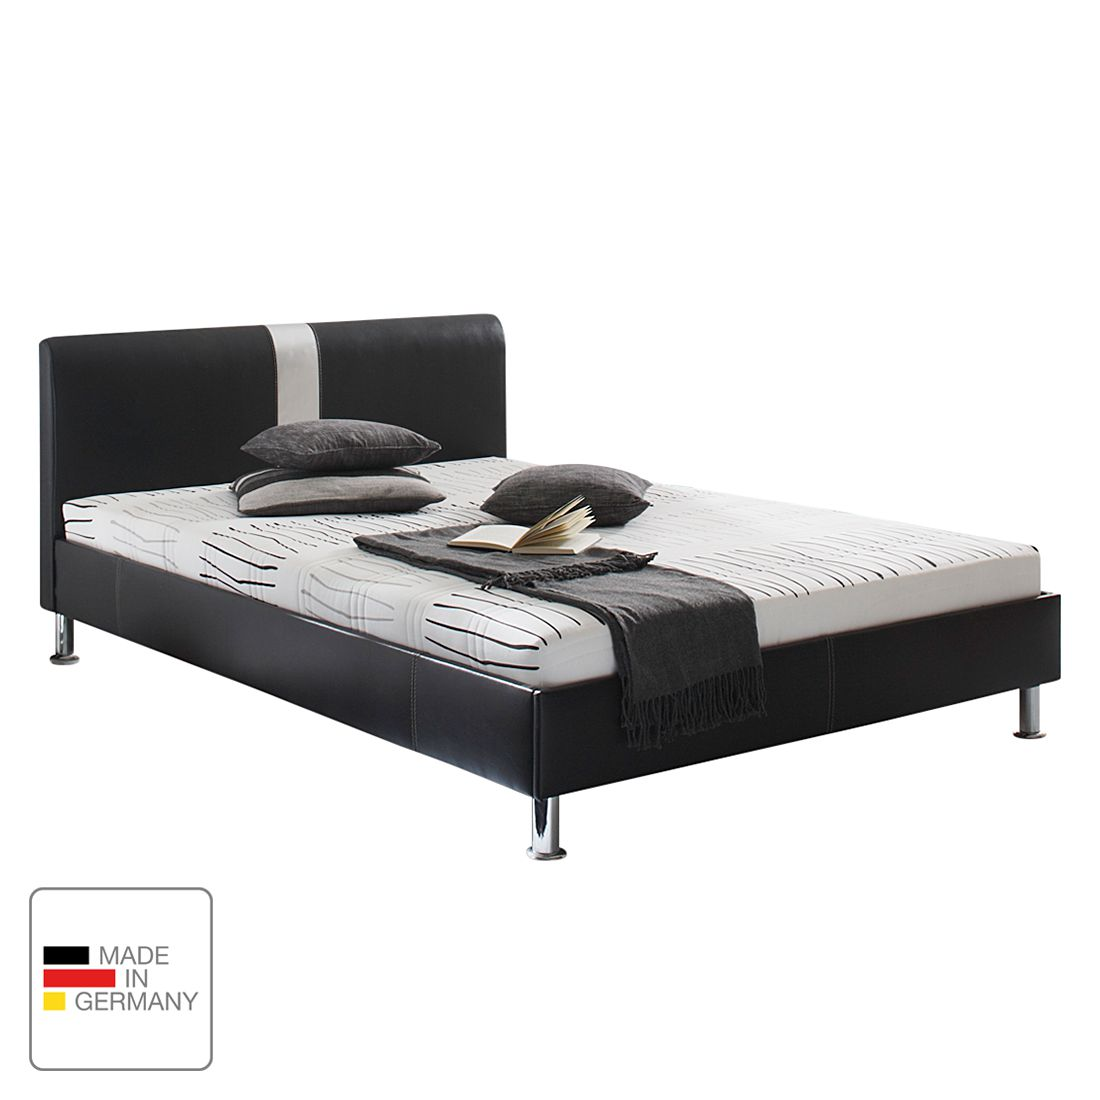 lit capitonn noir 140x200 simili cuir avec matelas pictures to pin on pinterest. Black Bedroom Furniture Sets. Home Design Ideas